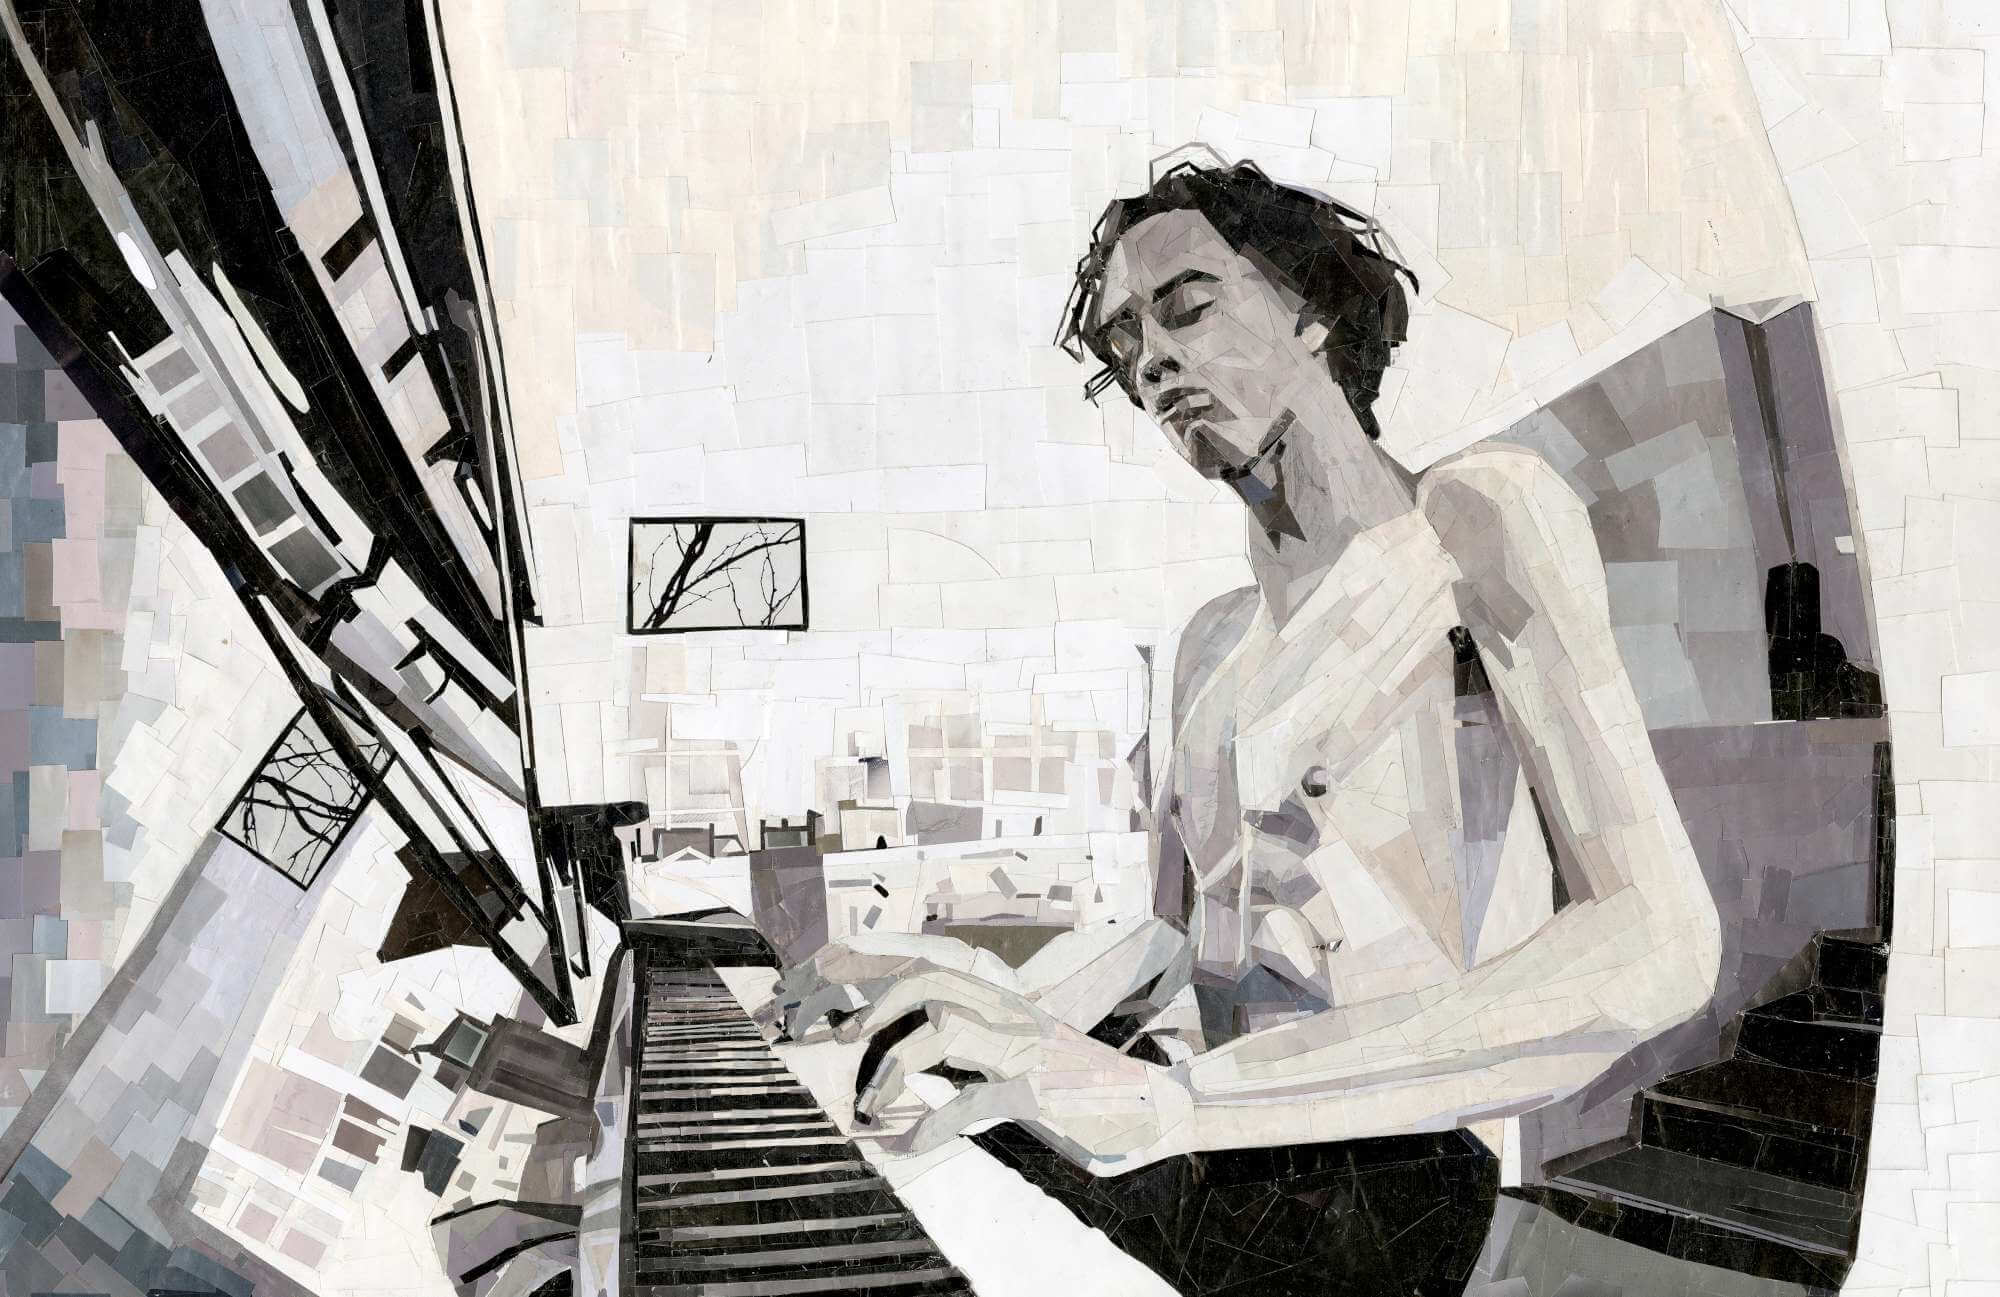 Self portrait of Seth Flaum playing the piano